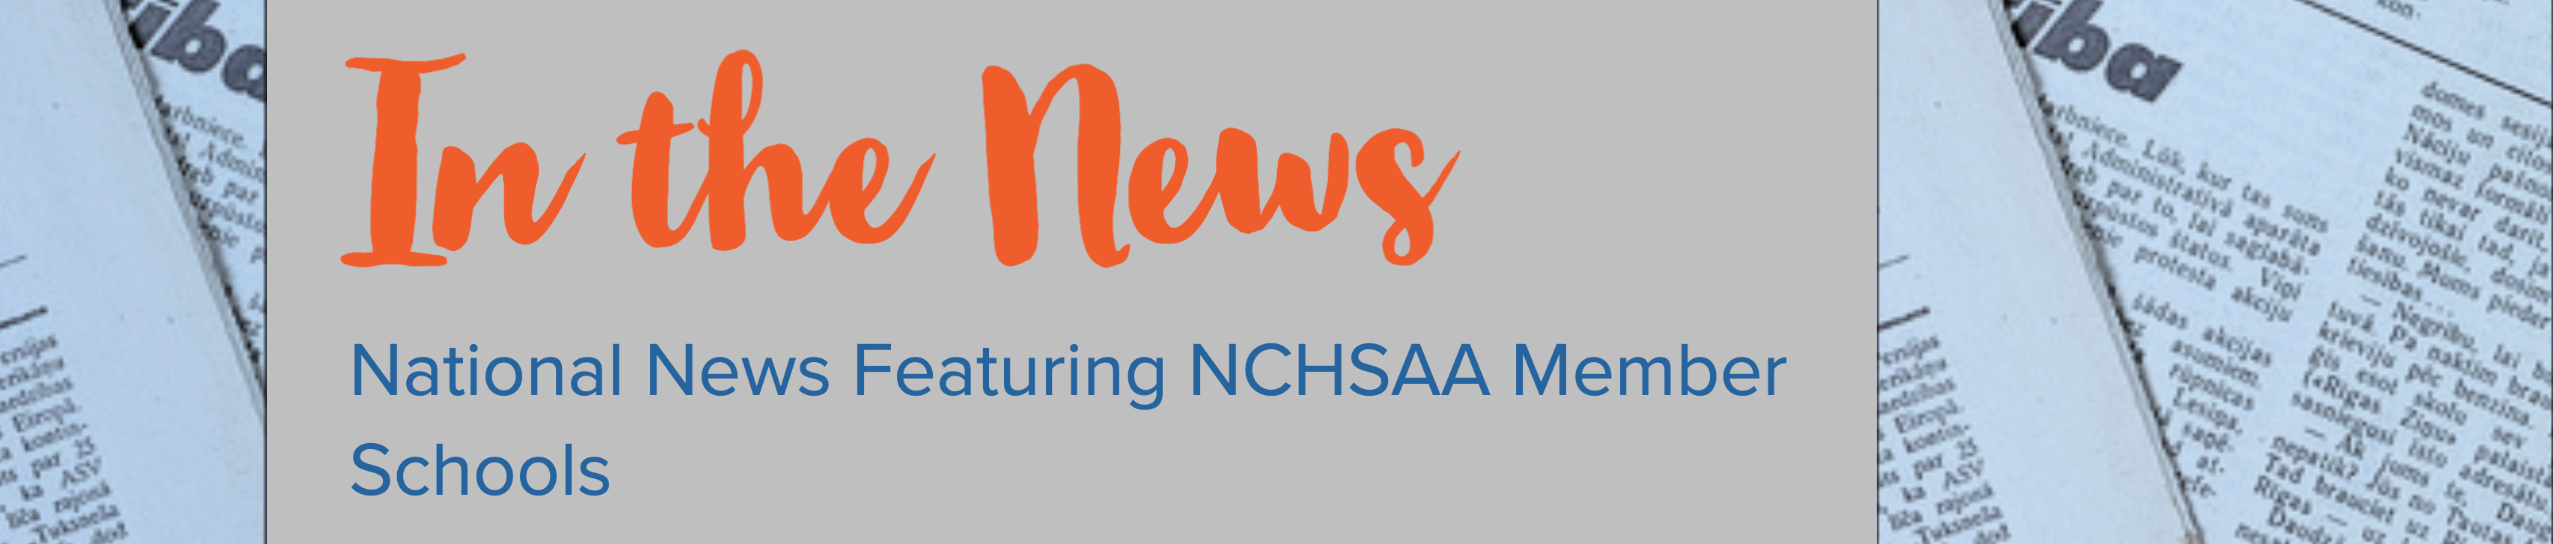 https://www.nchsaa.org/sites/default/files/IntheNewsBannerNew.png